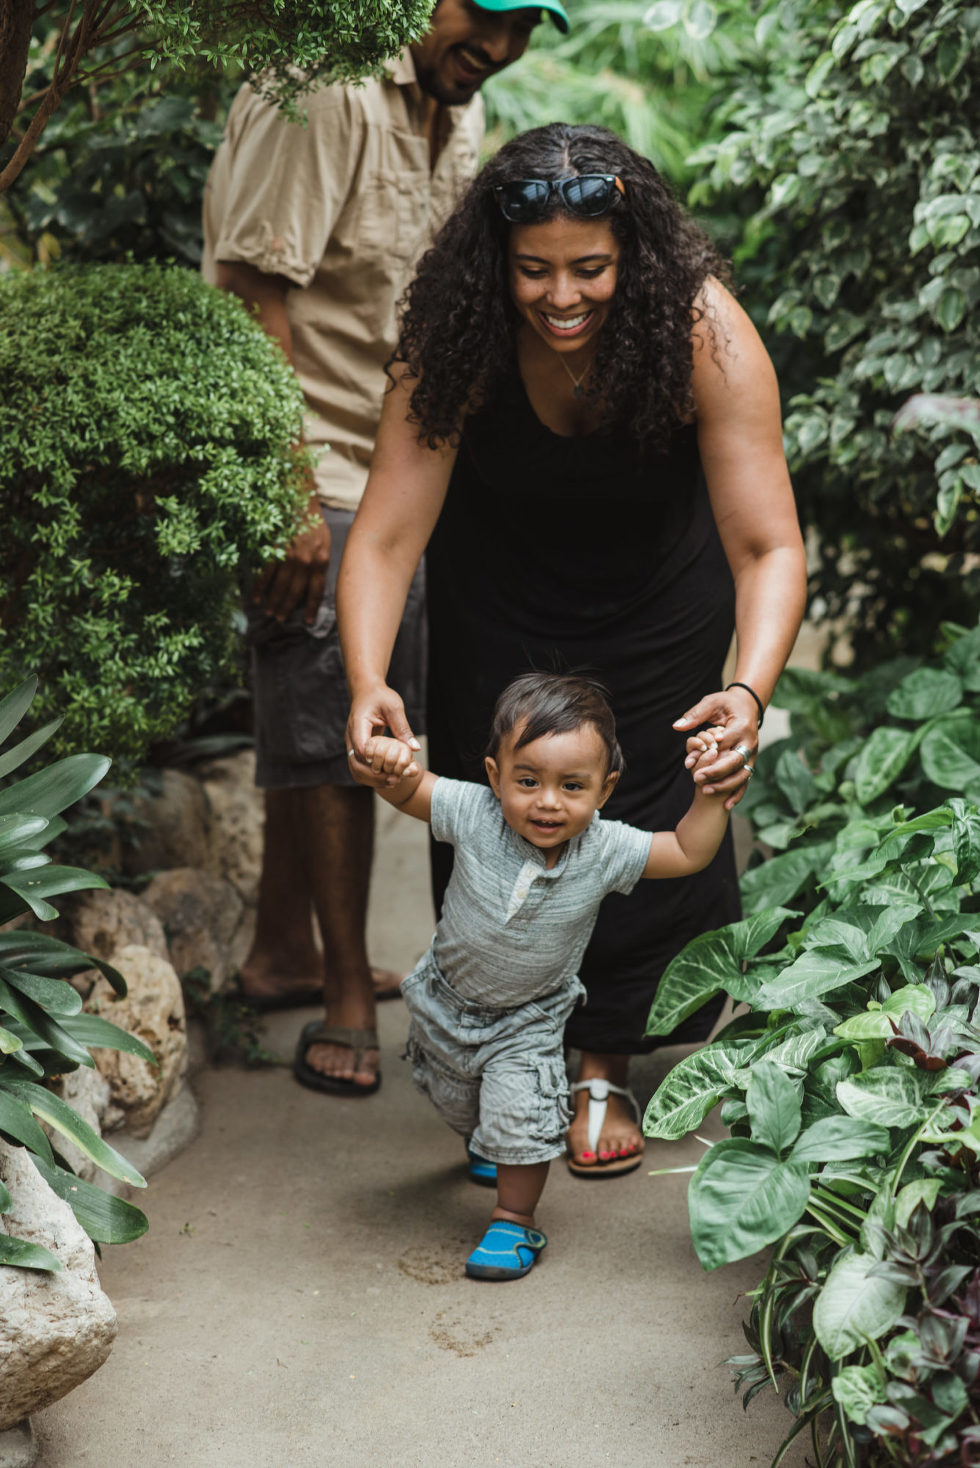 mother helps young child walk through green gardens family photo sessions